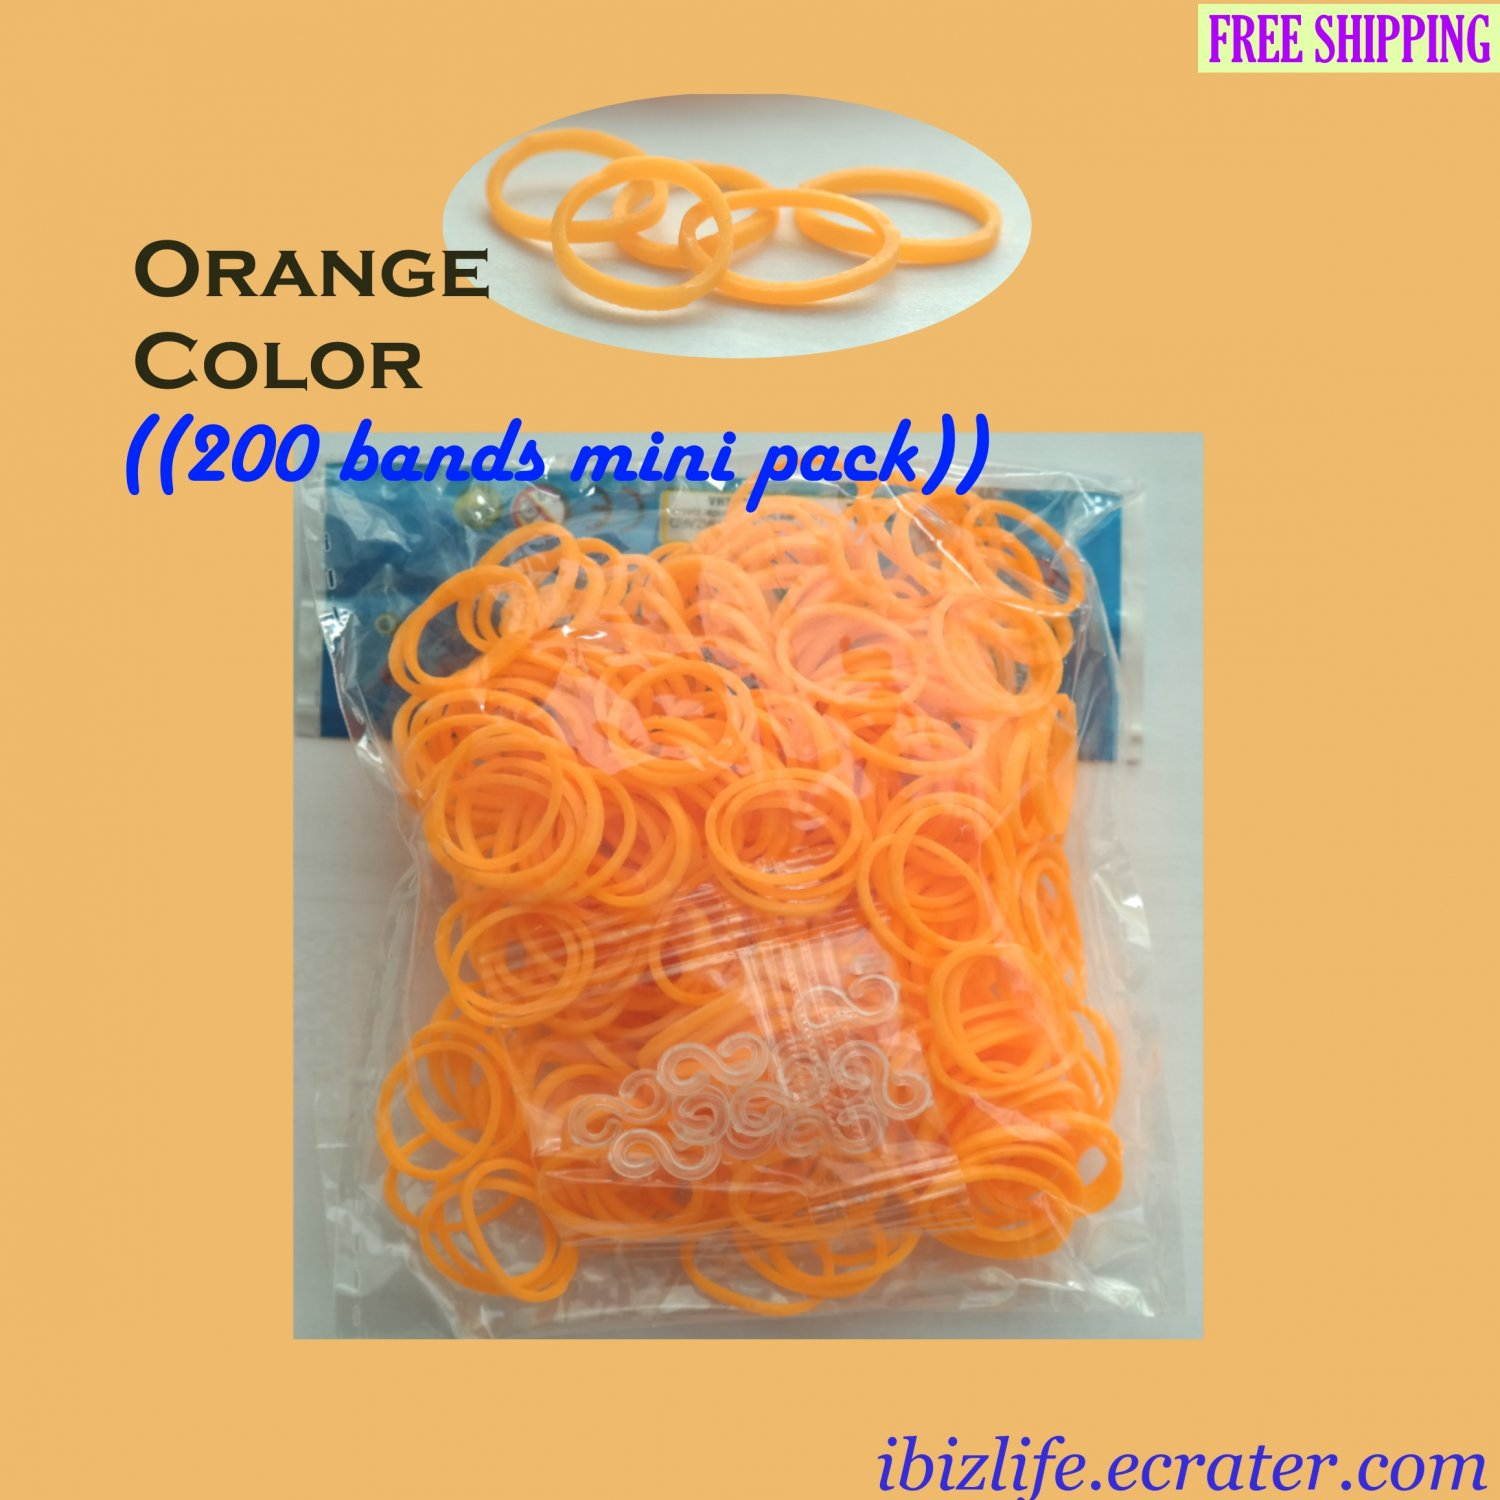 RAINBOW LOOM RUBBER BAND REFILL with 200 bands (Orange color) & 12 Clips (RL43)